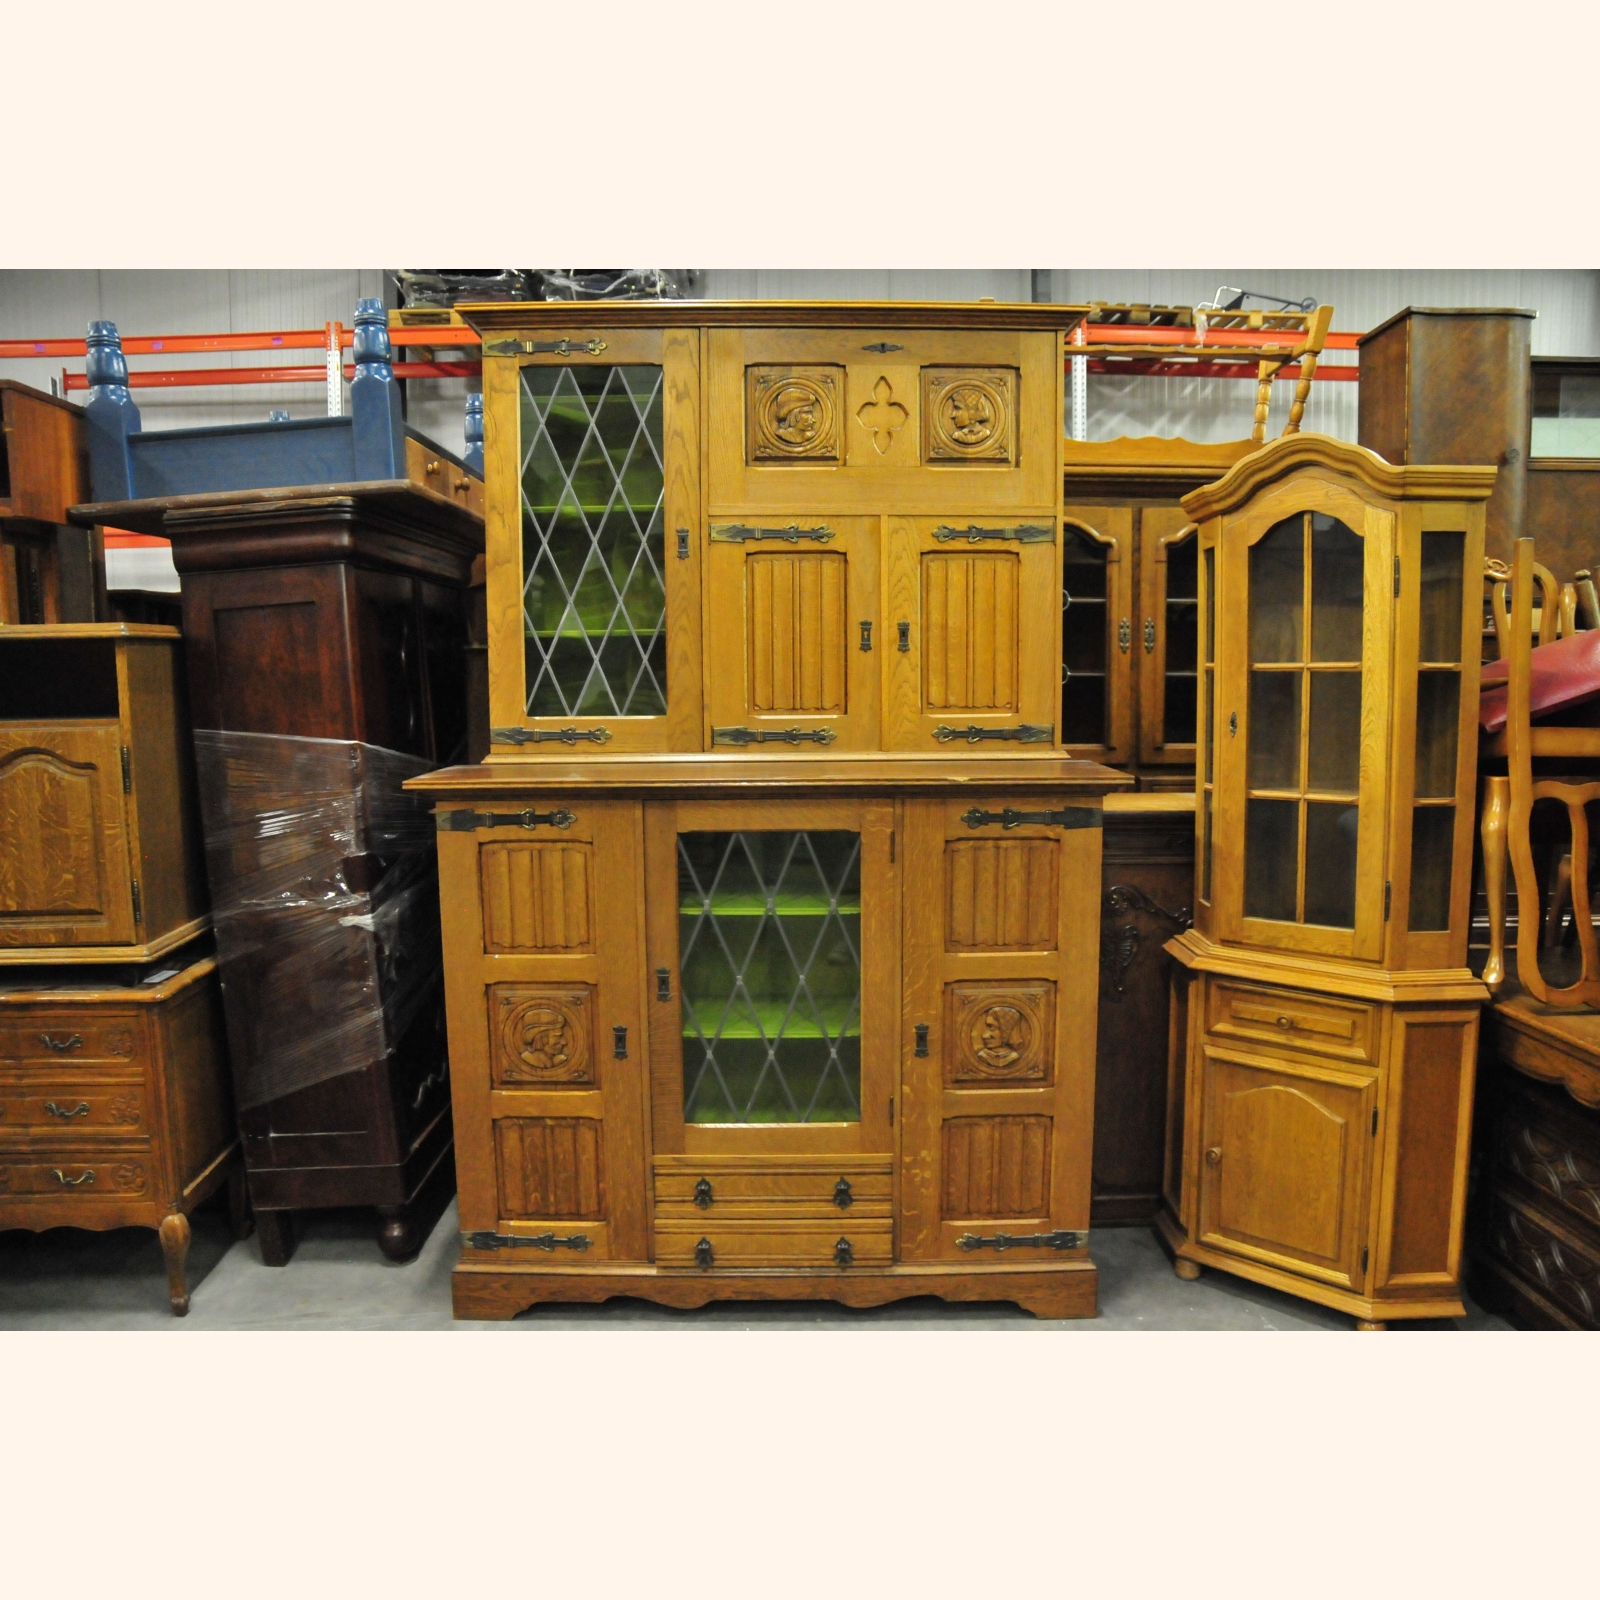 Glass Kitchen Cabinet Doors Only: Massive Oak Cabinet With Leaded Glass Doors